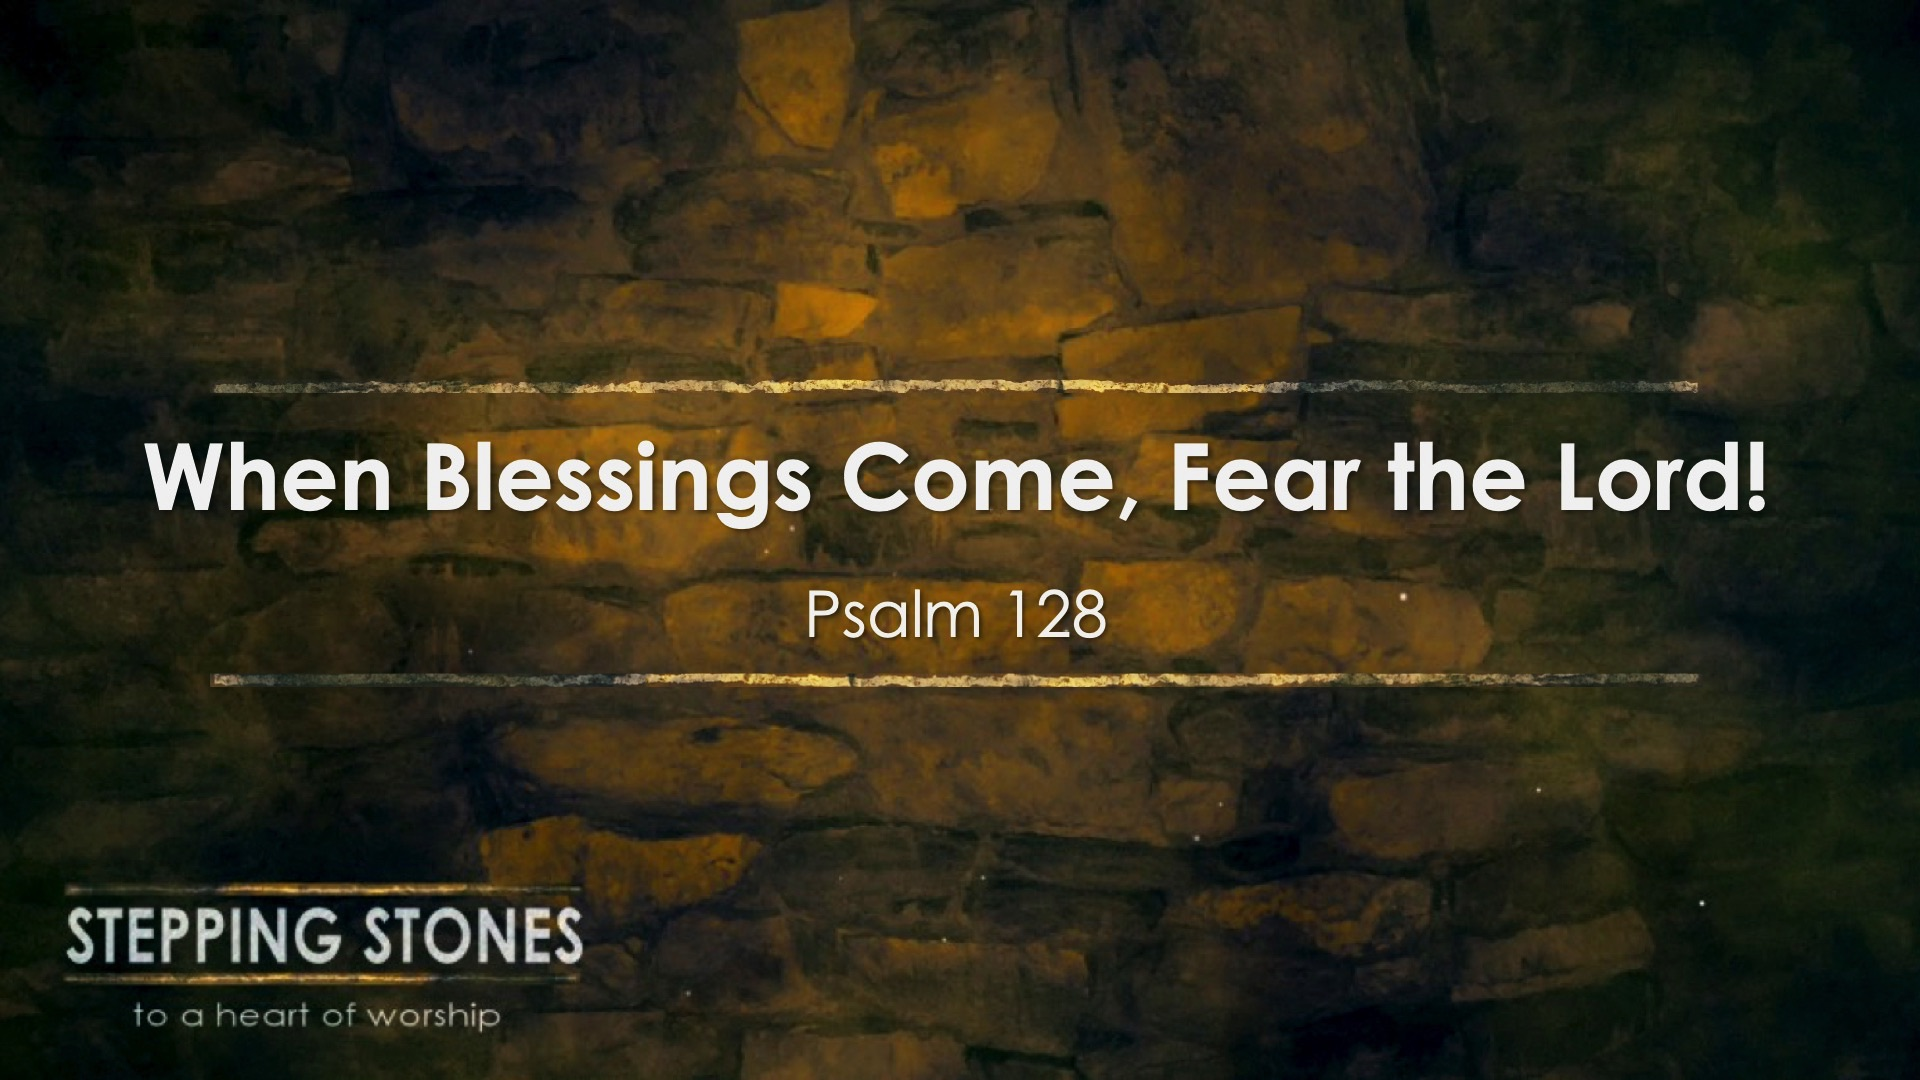 When Blessings Come, Fear the Lord!